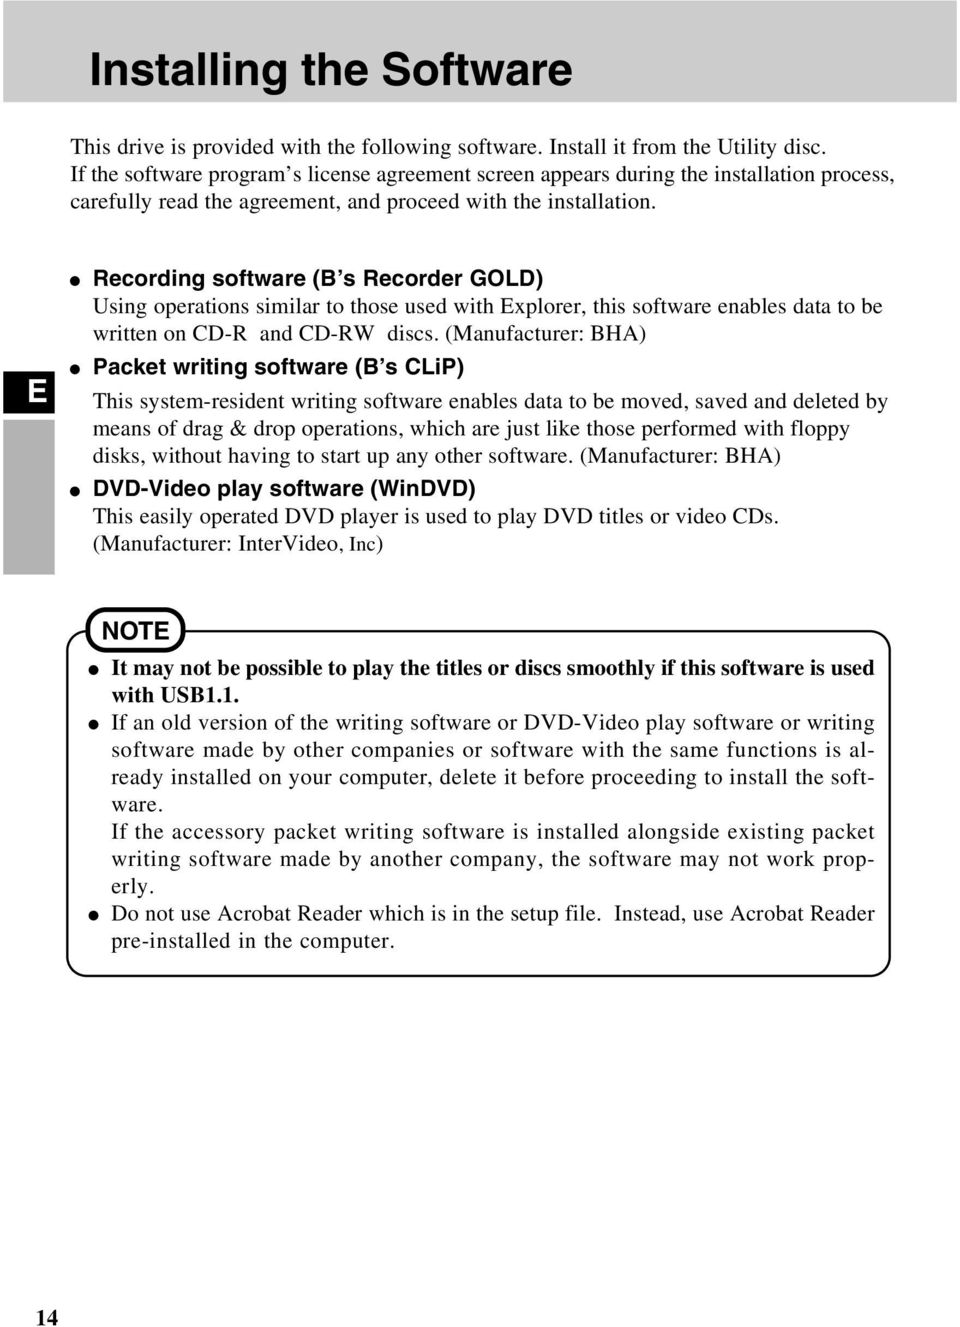 E Recording software (B s Recorder GOLD) Using operations similar to those used with Explorer, this software enables data to be written on CD-R and CD-RW discs.